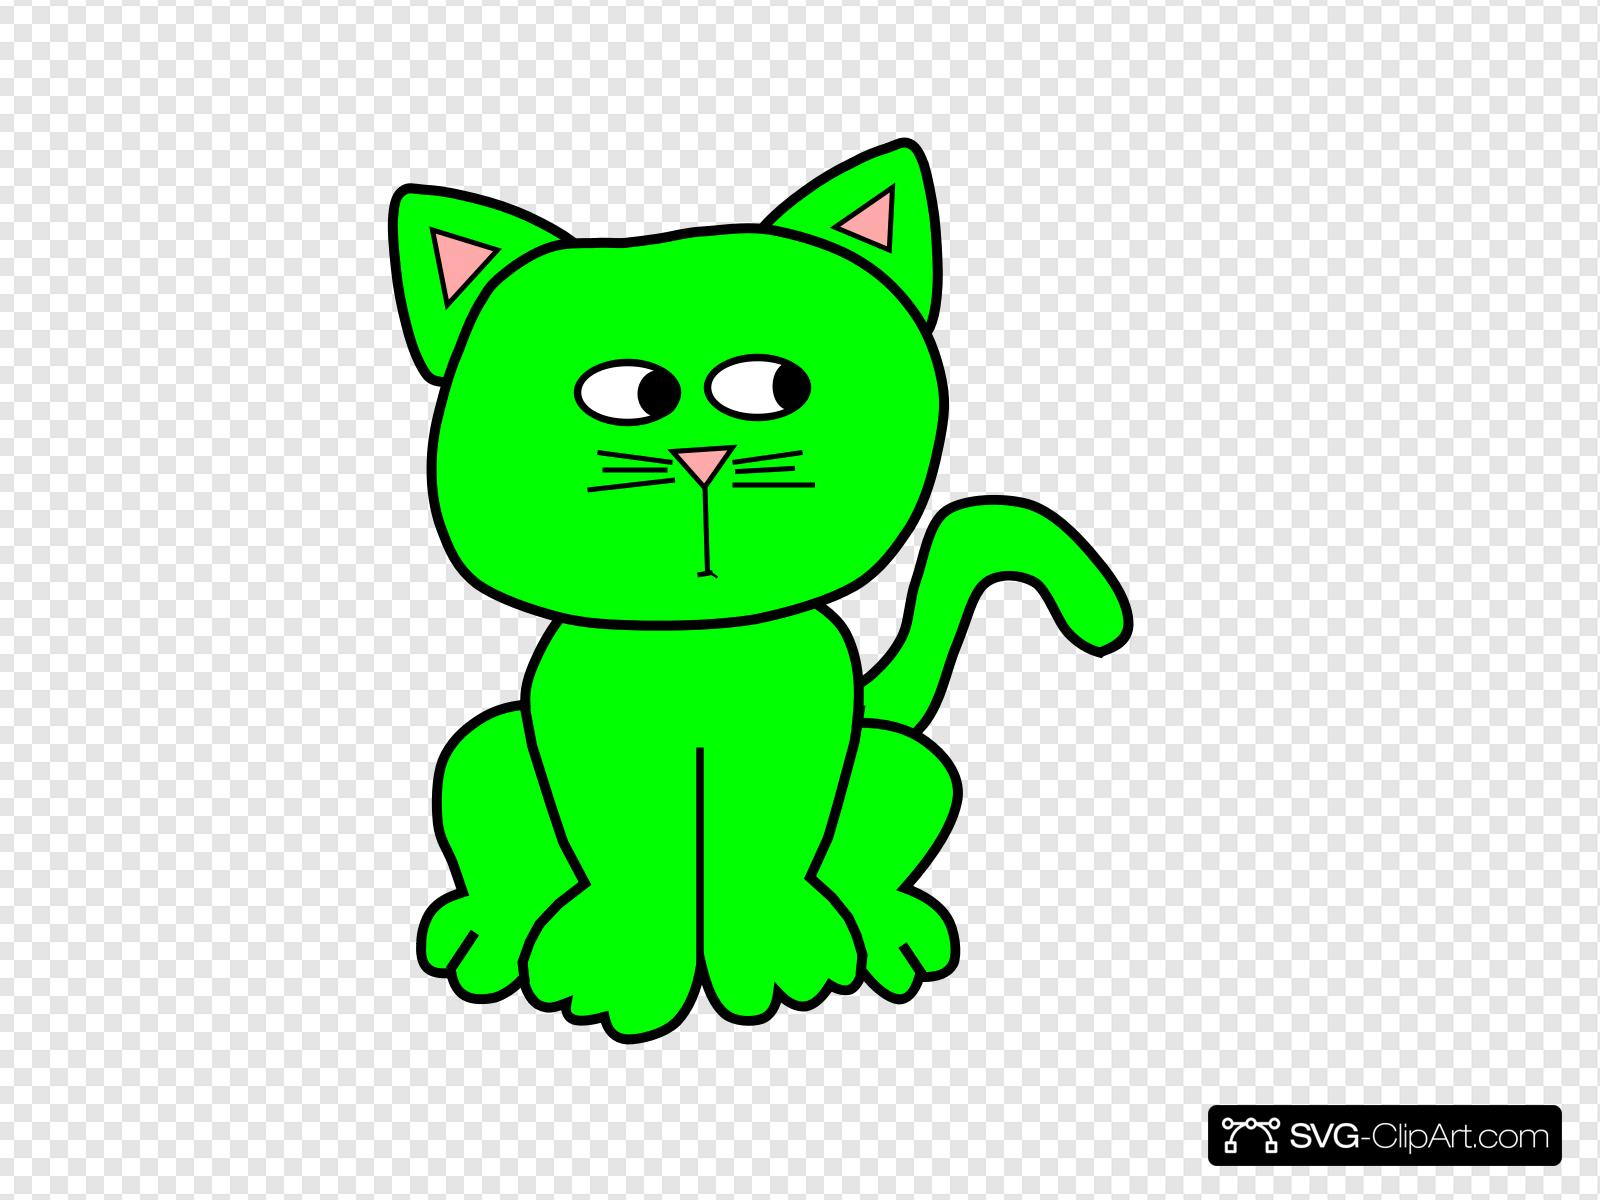 Green Paranoid Clip art, Icon and SVG.